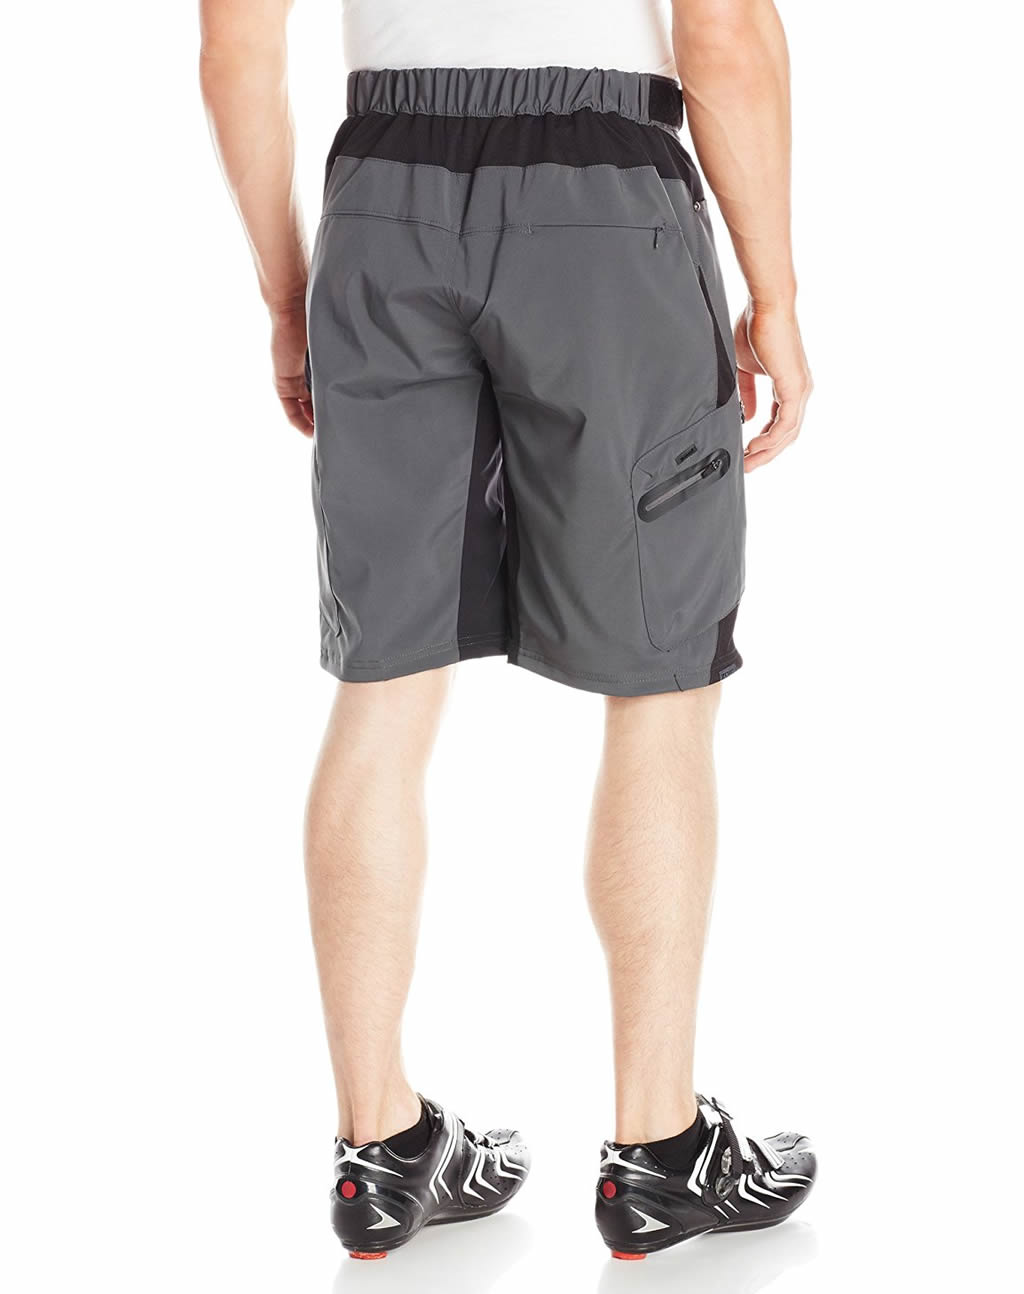 Shadow ZOIC Men's Ether Cycling Shorts, Back